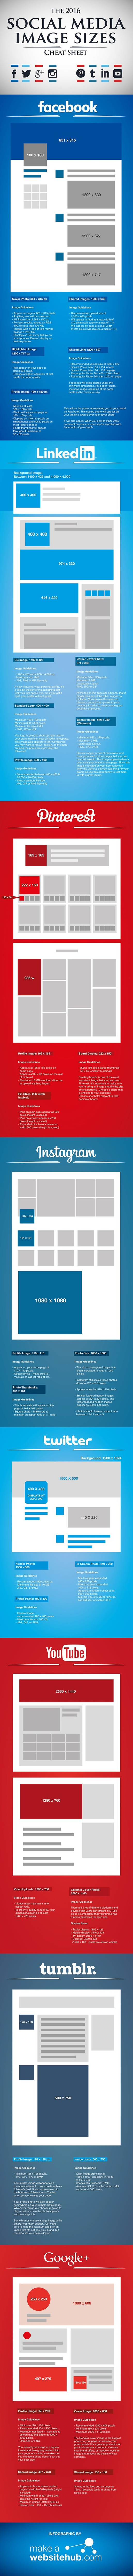 The Ultimate Cheat Sheet of Photo & Image Sizes on Facebook, Twitter, LinkedIn & Other Social Networks [Infographic], via @HubSpot